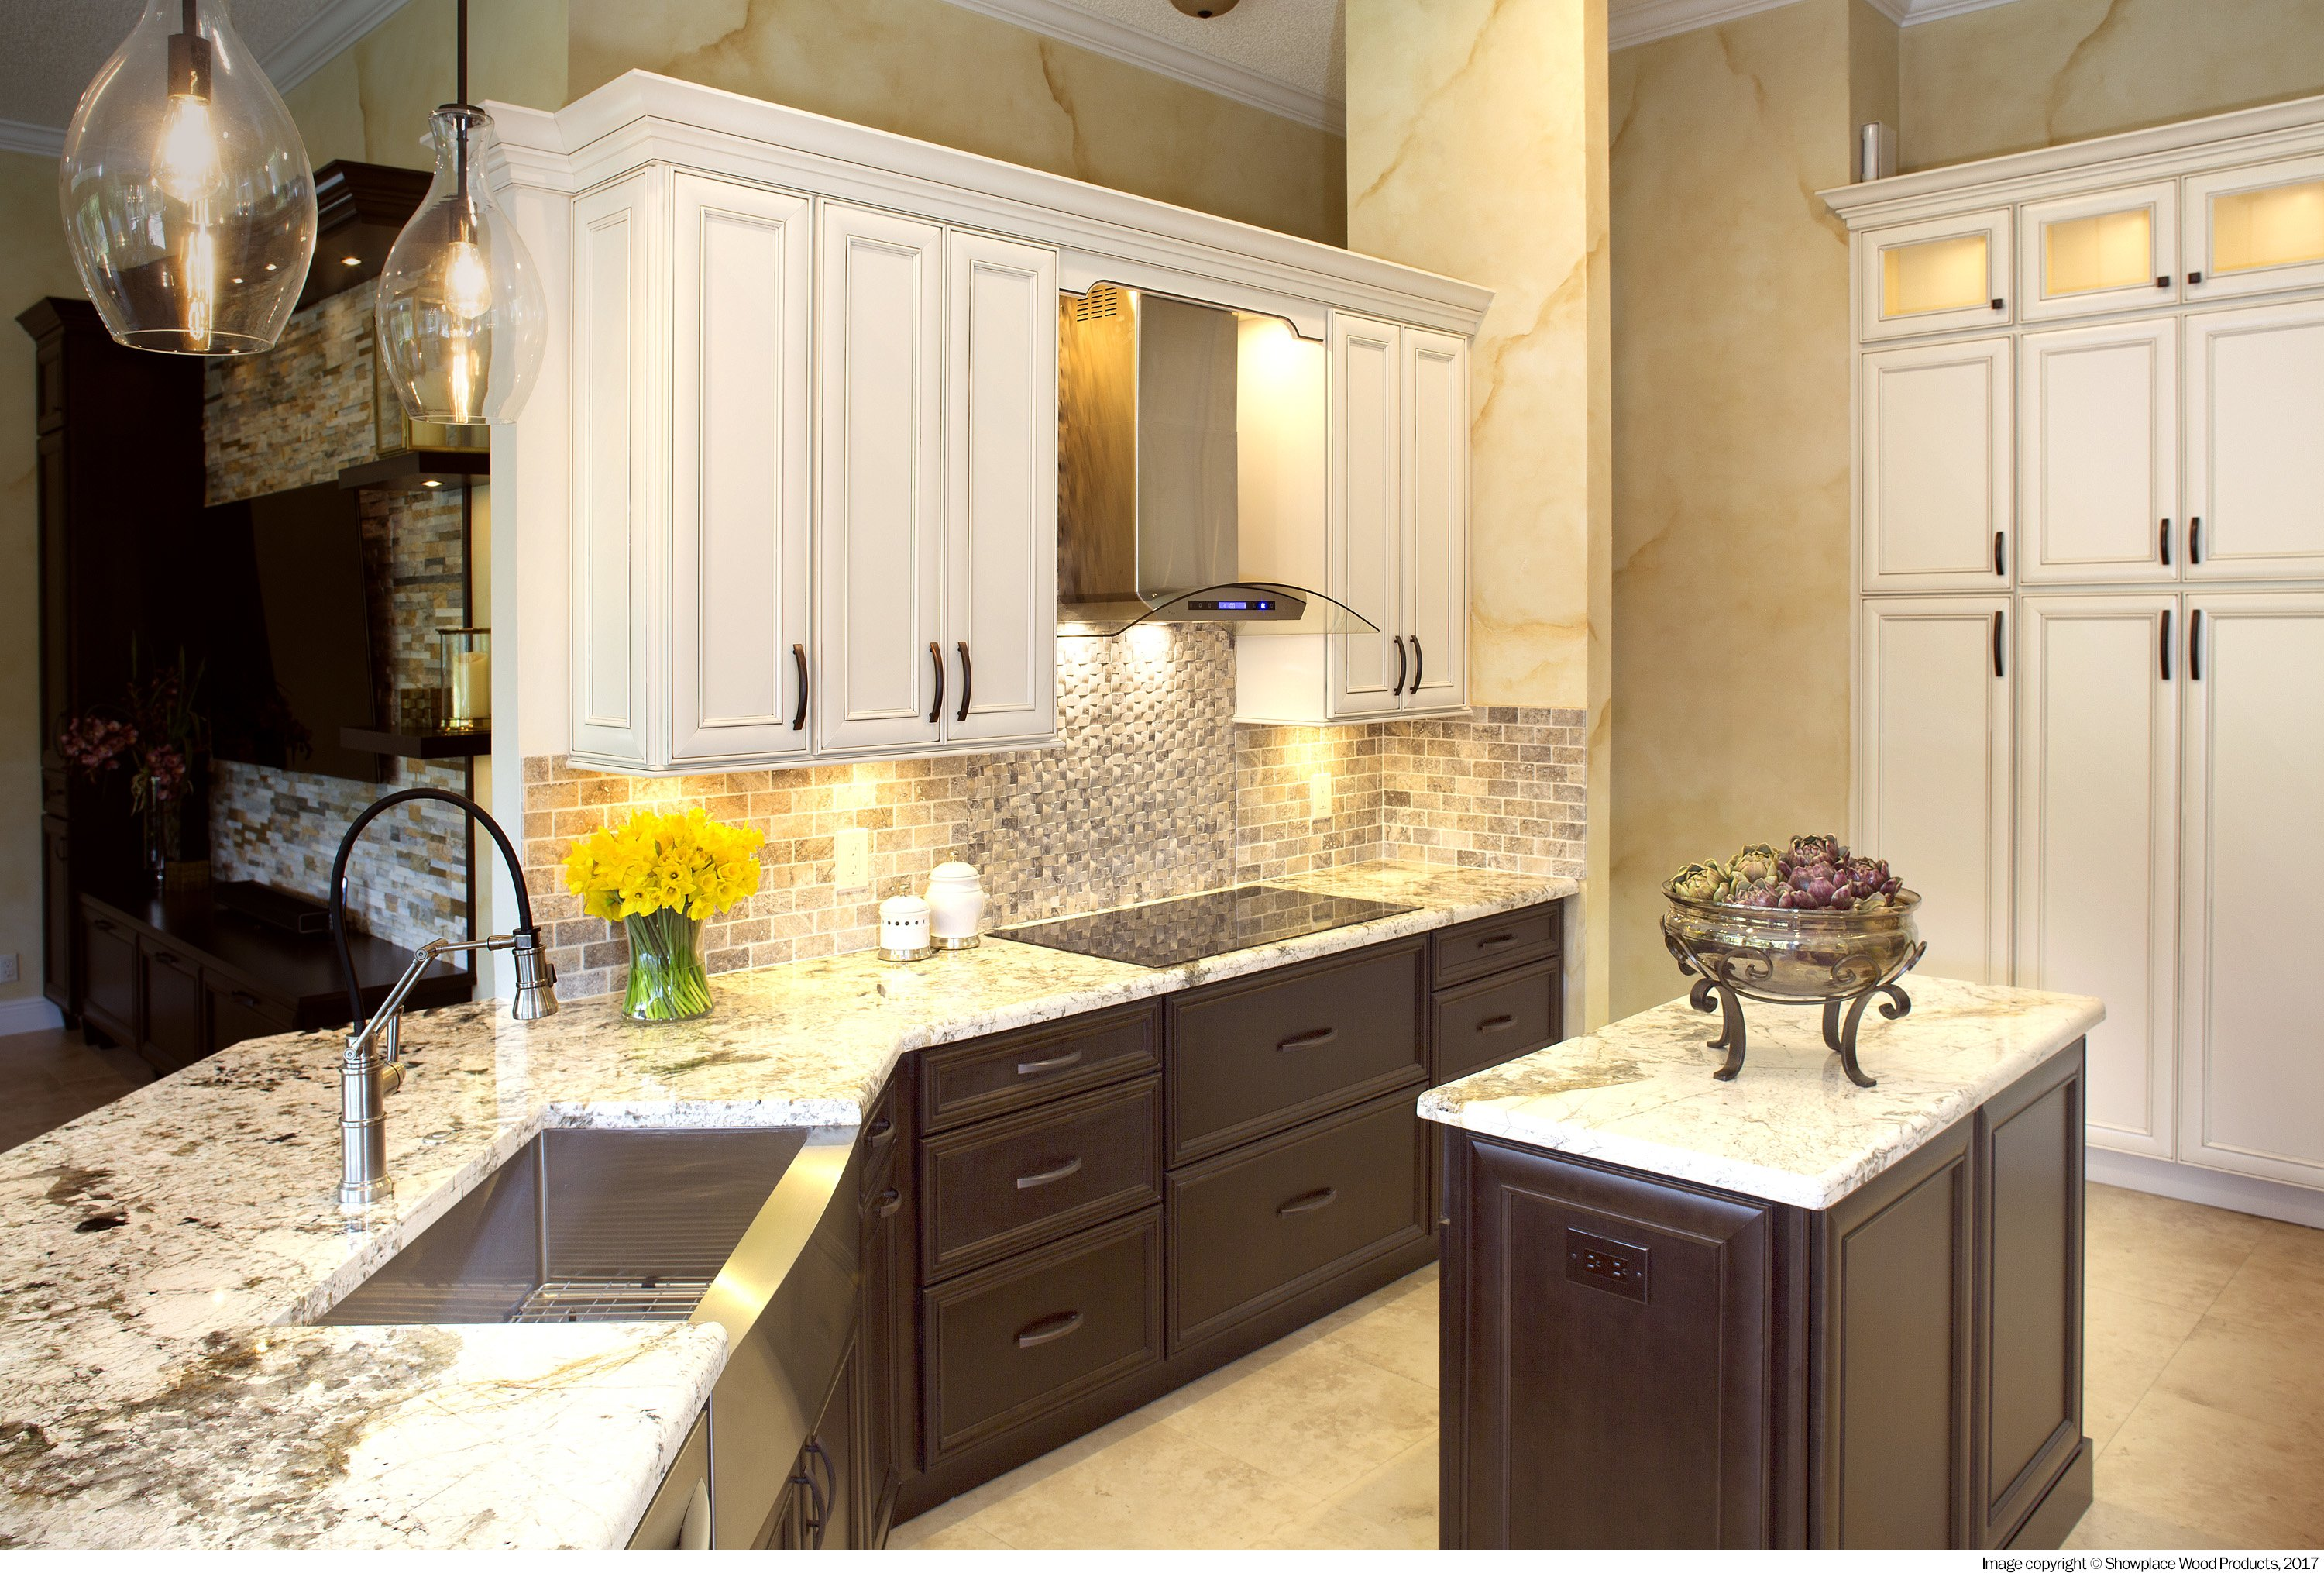 kitchen designs salisbury md kitchen kitchen remodel salisbury md kitchen concepts plus 4675